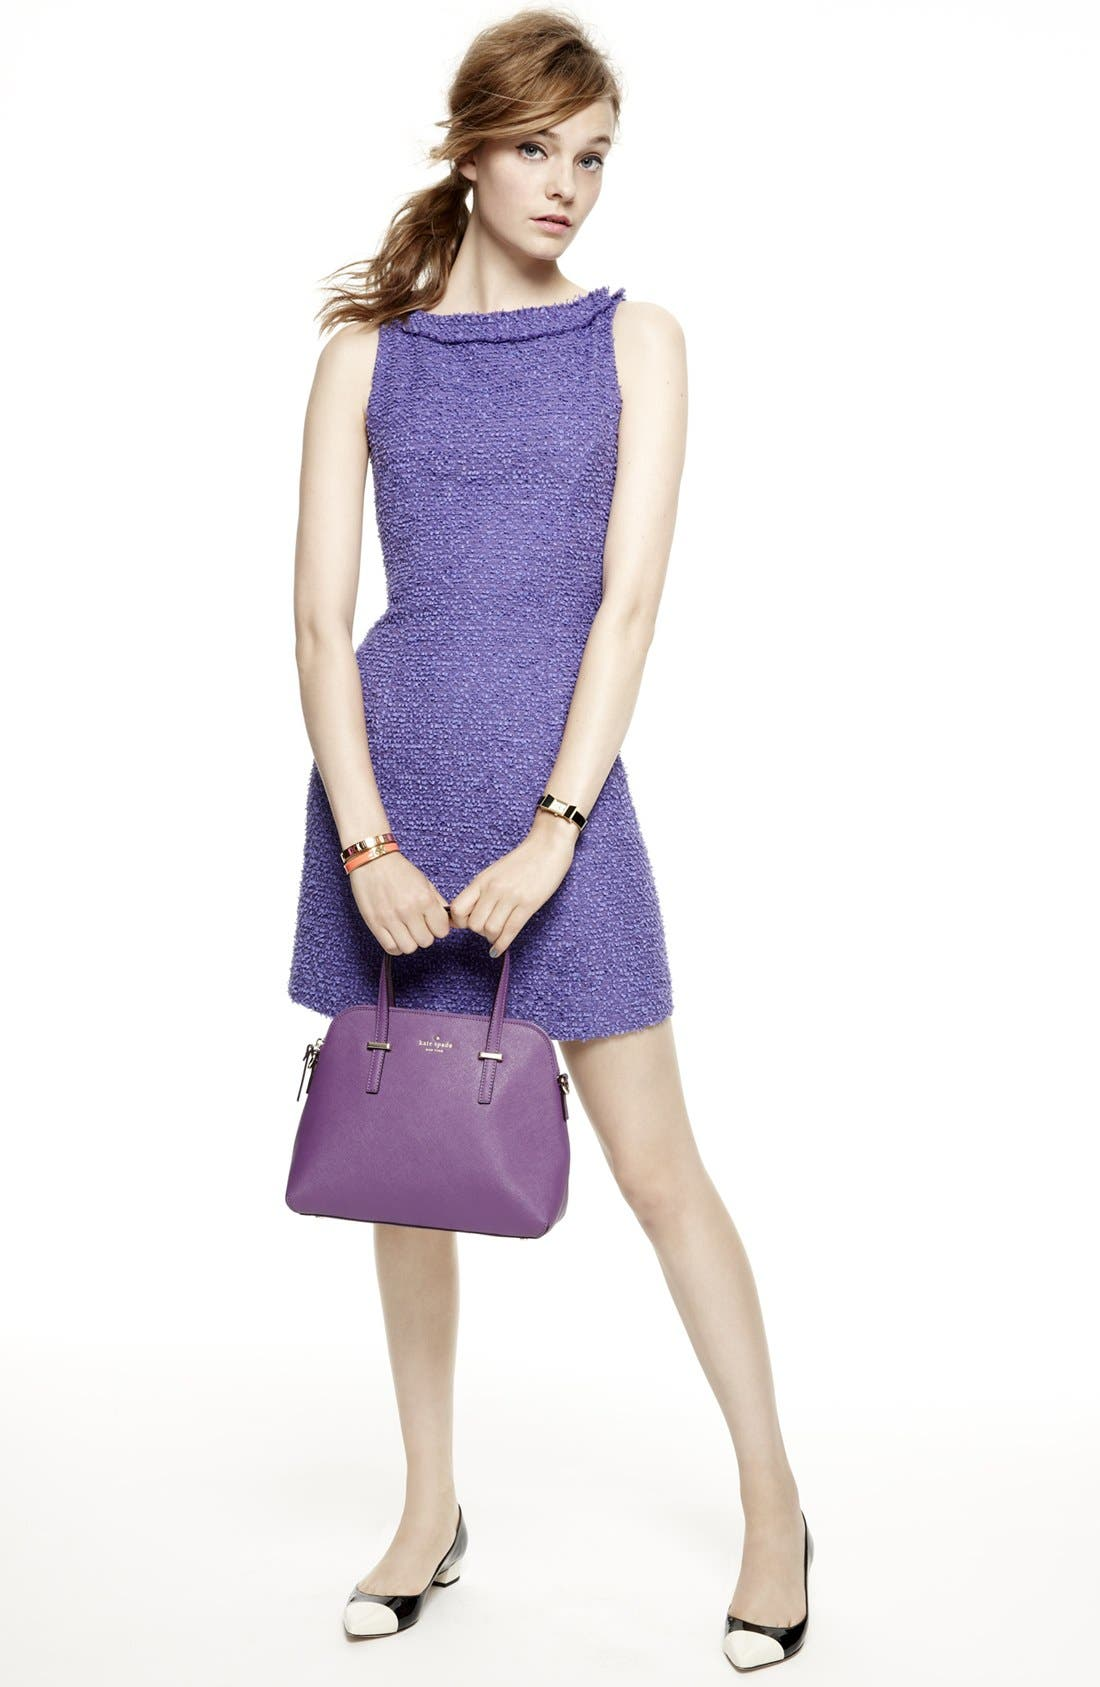 Alternate Image 1 Selected - kate spade new york a-line dress & accessories